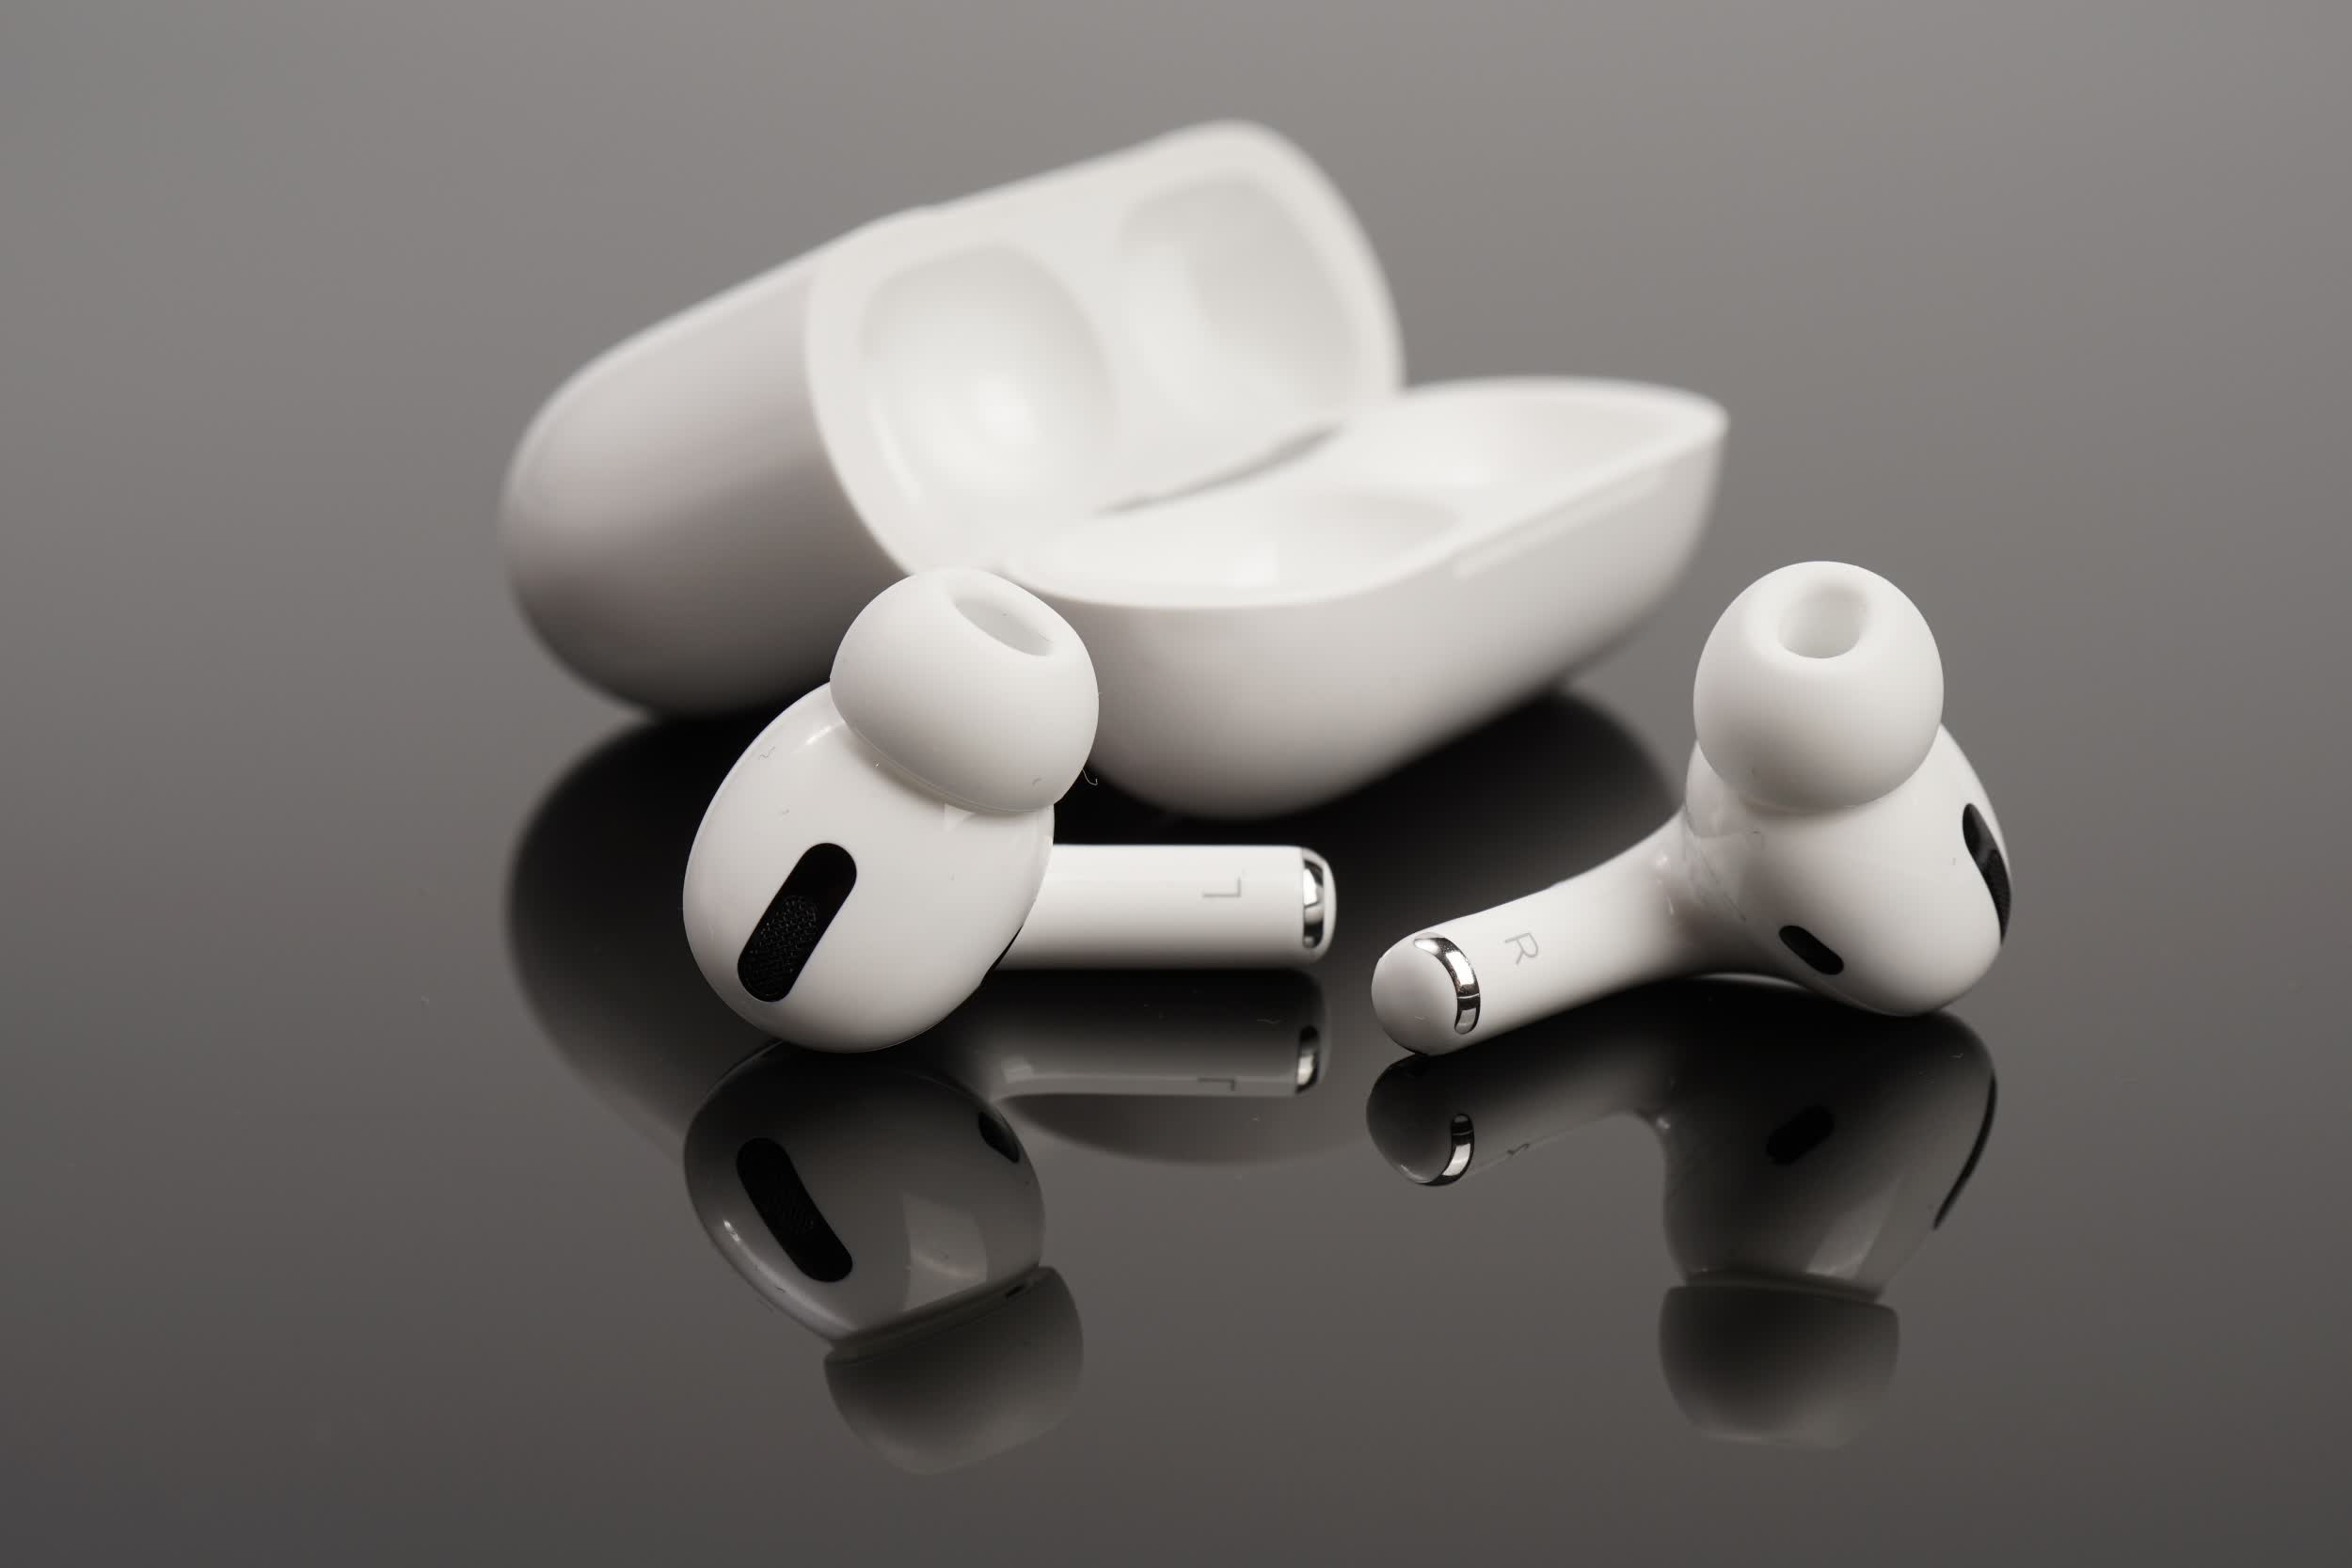 Apple's upcoming AirPods 3 might not arrive until the end of the year